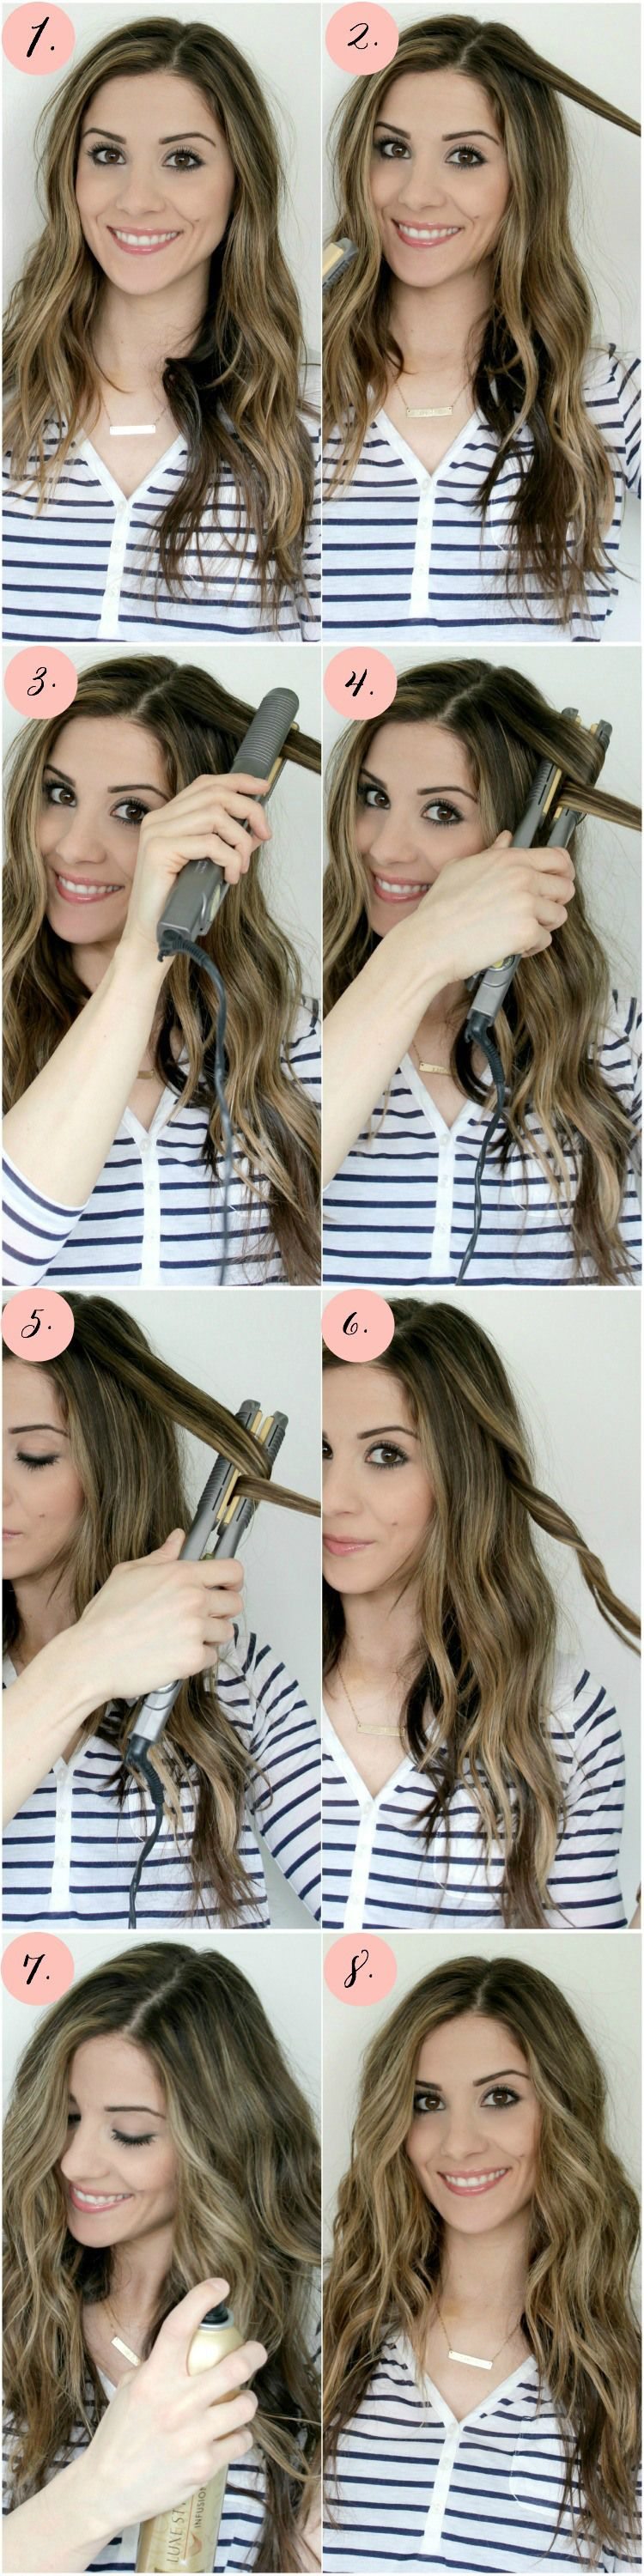 Flat Iron Curls Tutorial Health And Beauty Pinterest Hair